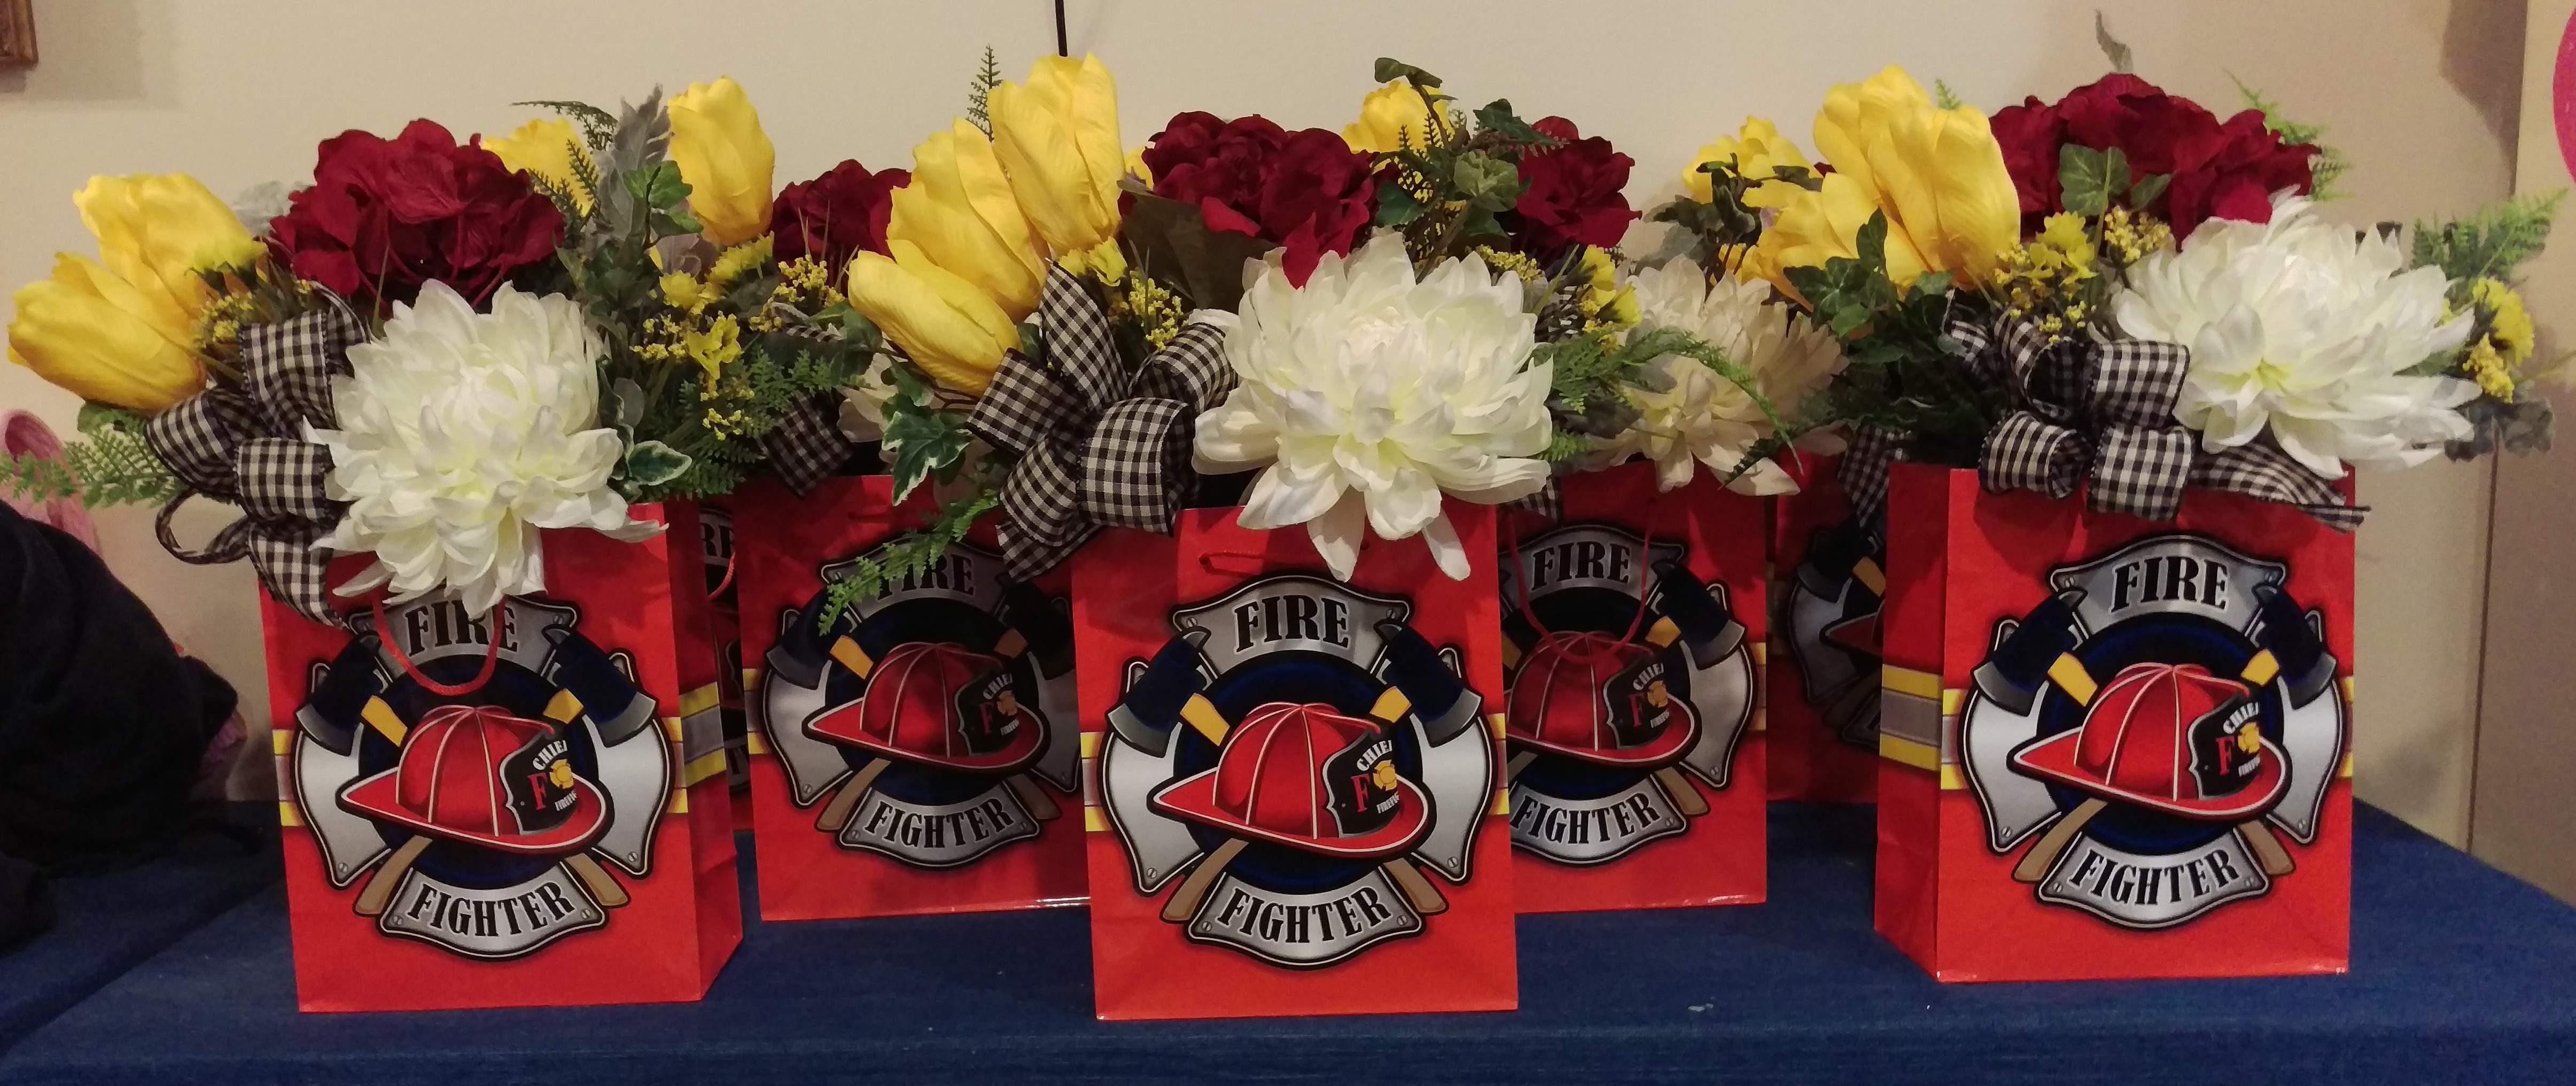 FIRE TRUCK Birthday Party Range Tableware /& Decorations Engine Fireman Officer